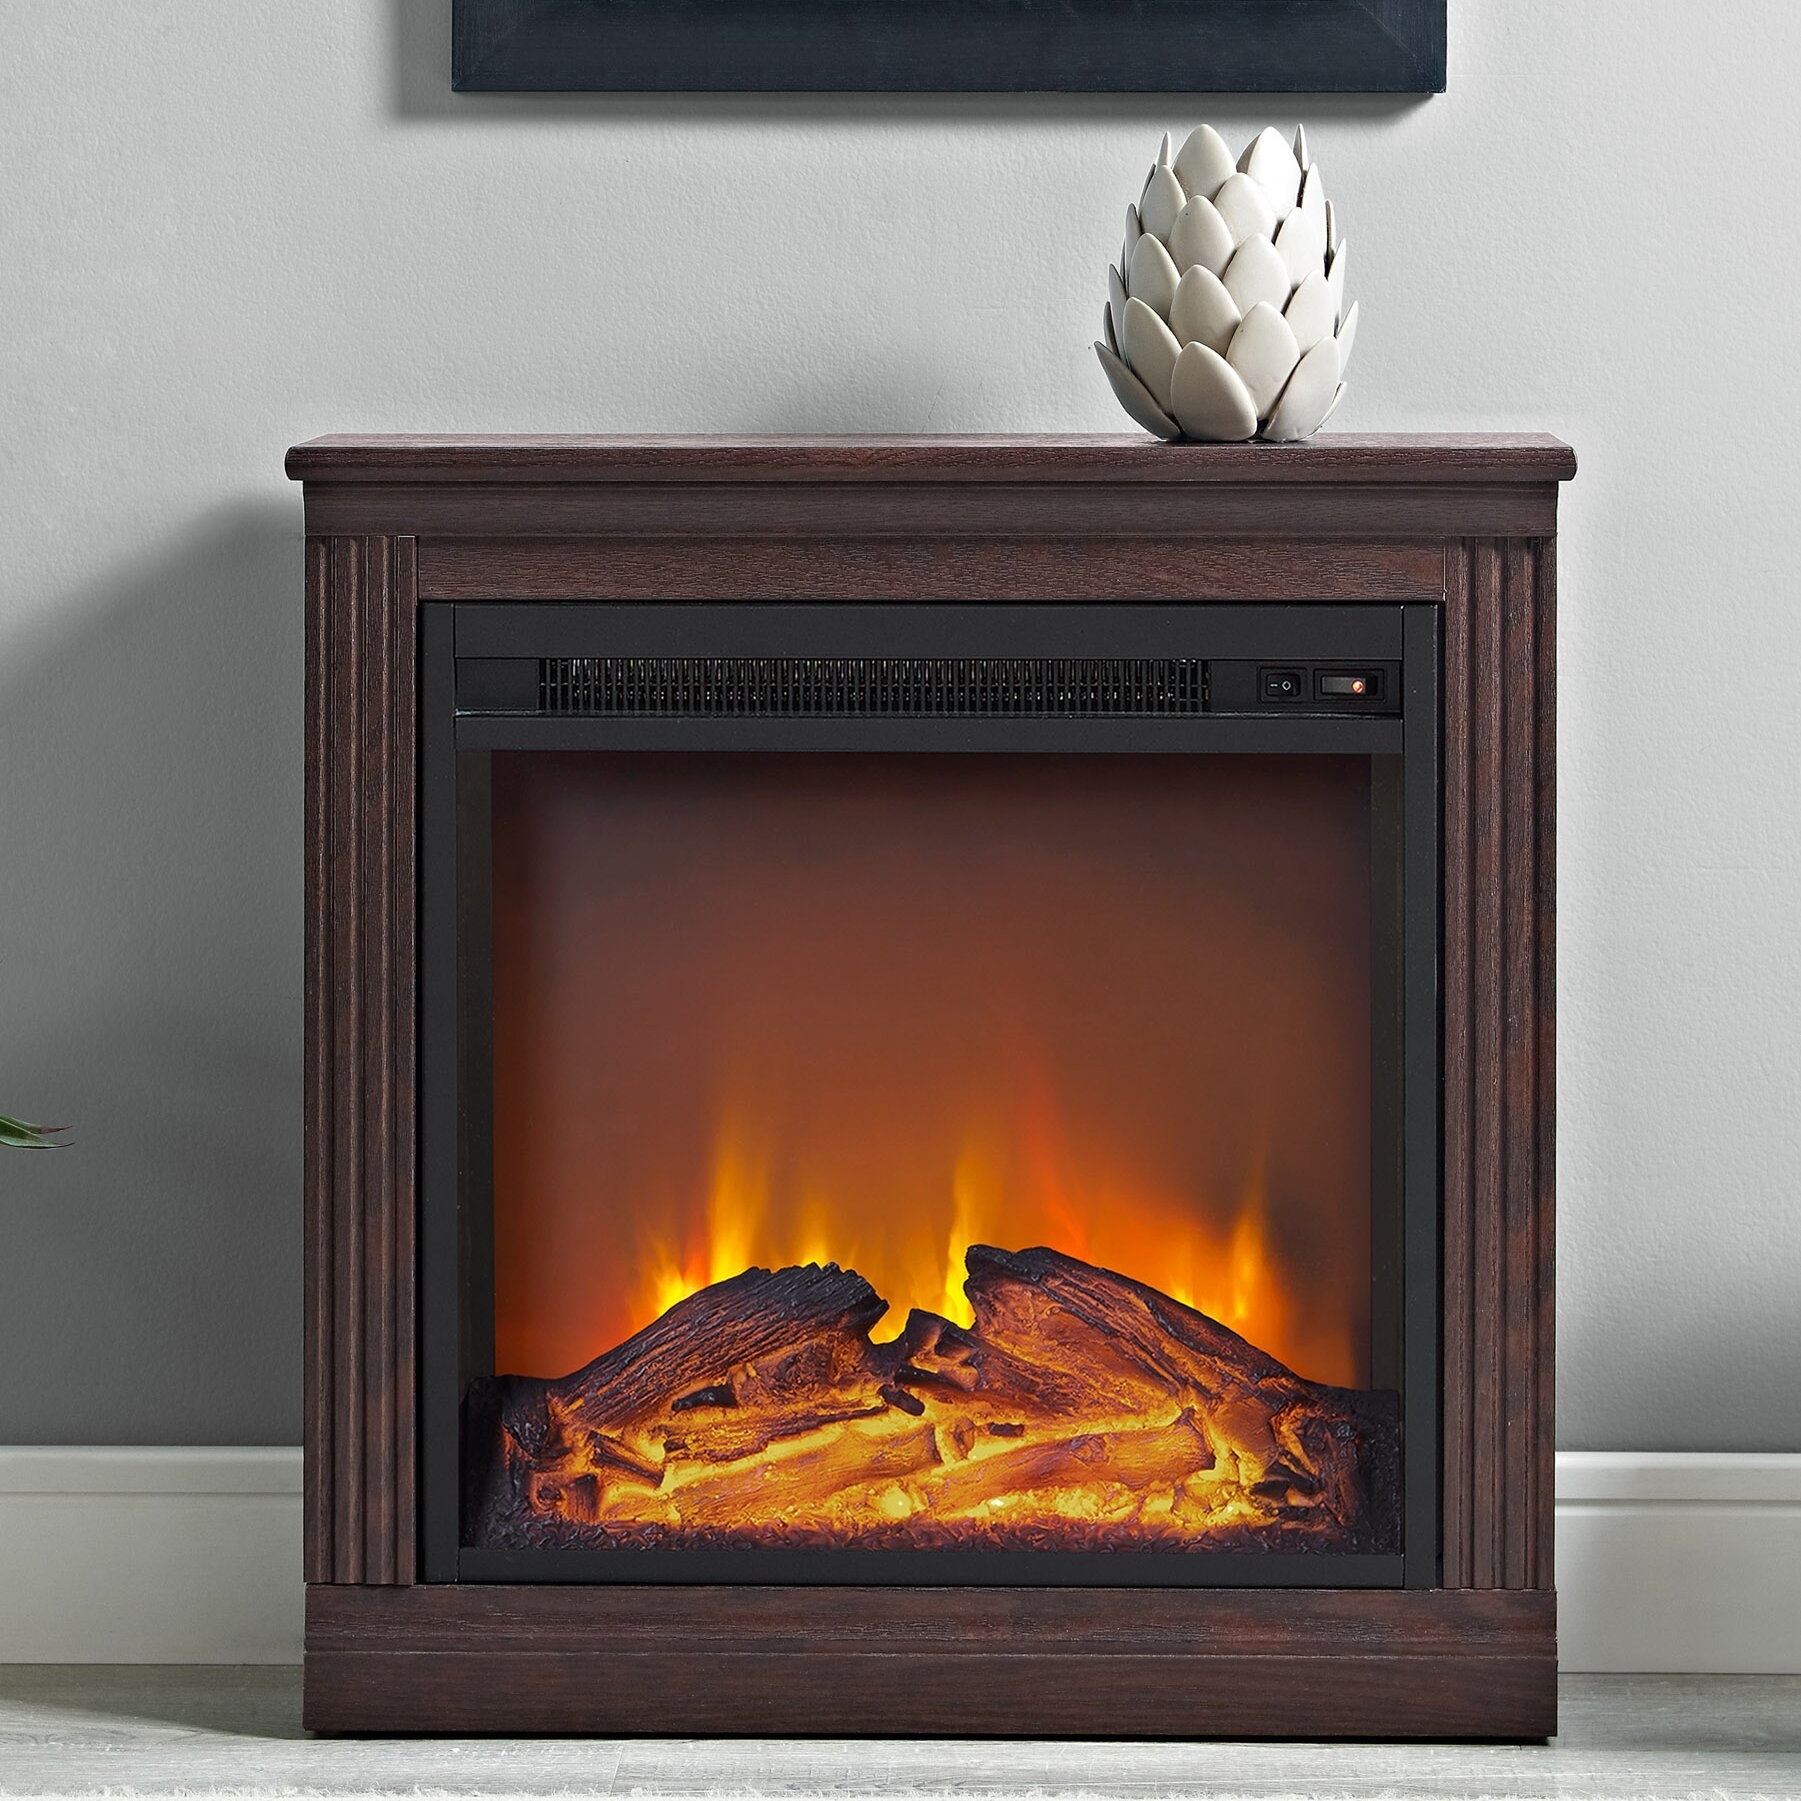 A small electric fireplace with fake wood on fire in it and wood paneling on the sides in a living room